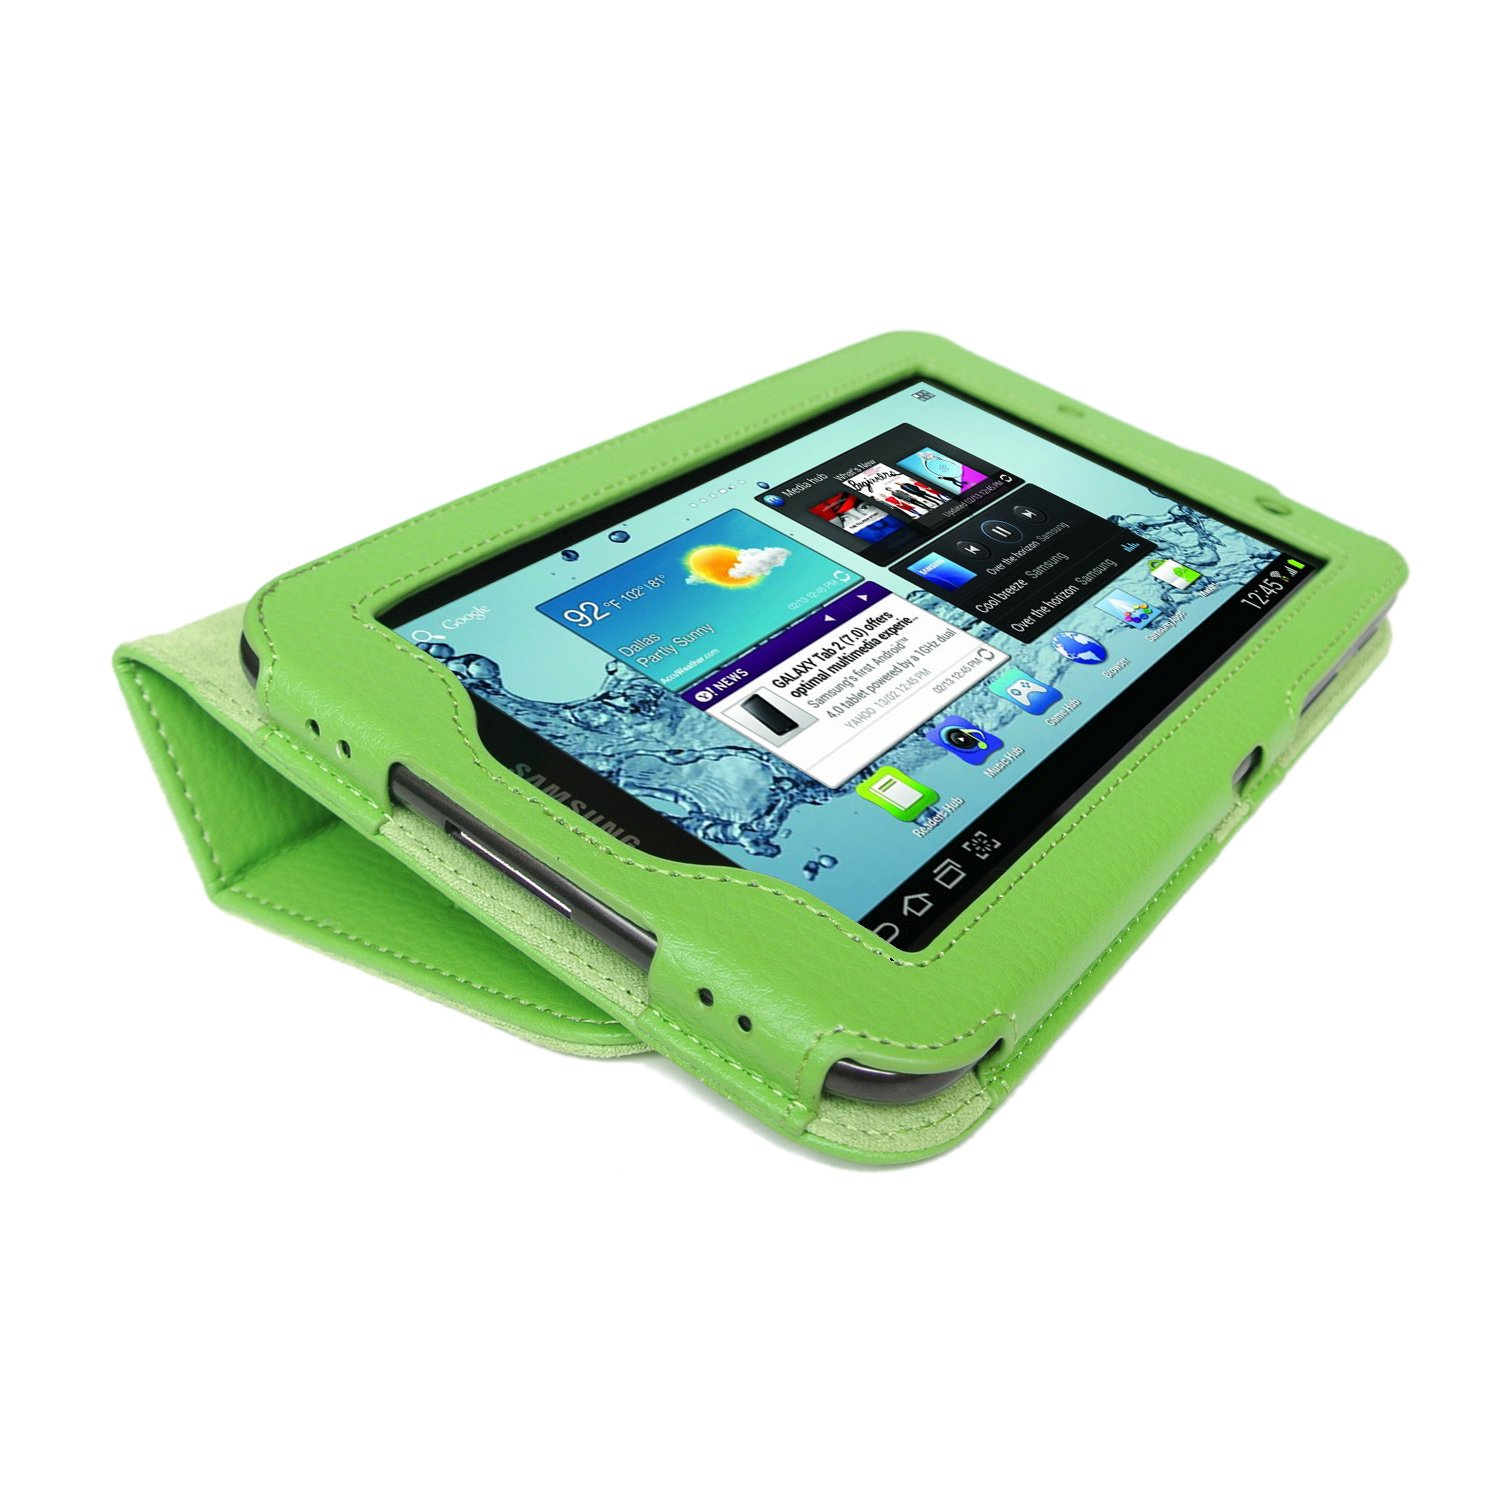 Samsung Galaxy Tab 2 7.0 GT-P3113 Slim Fit Leather Case (Green) with Stand by Supcase